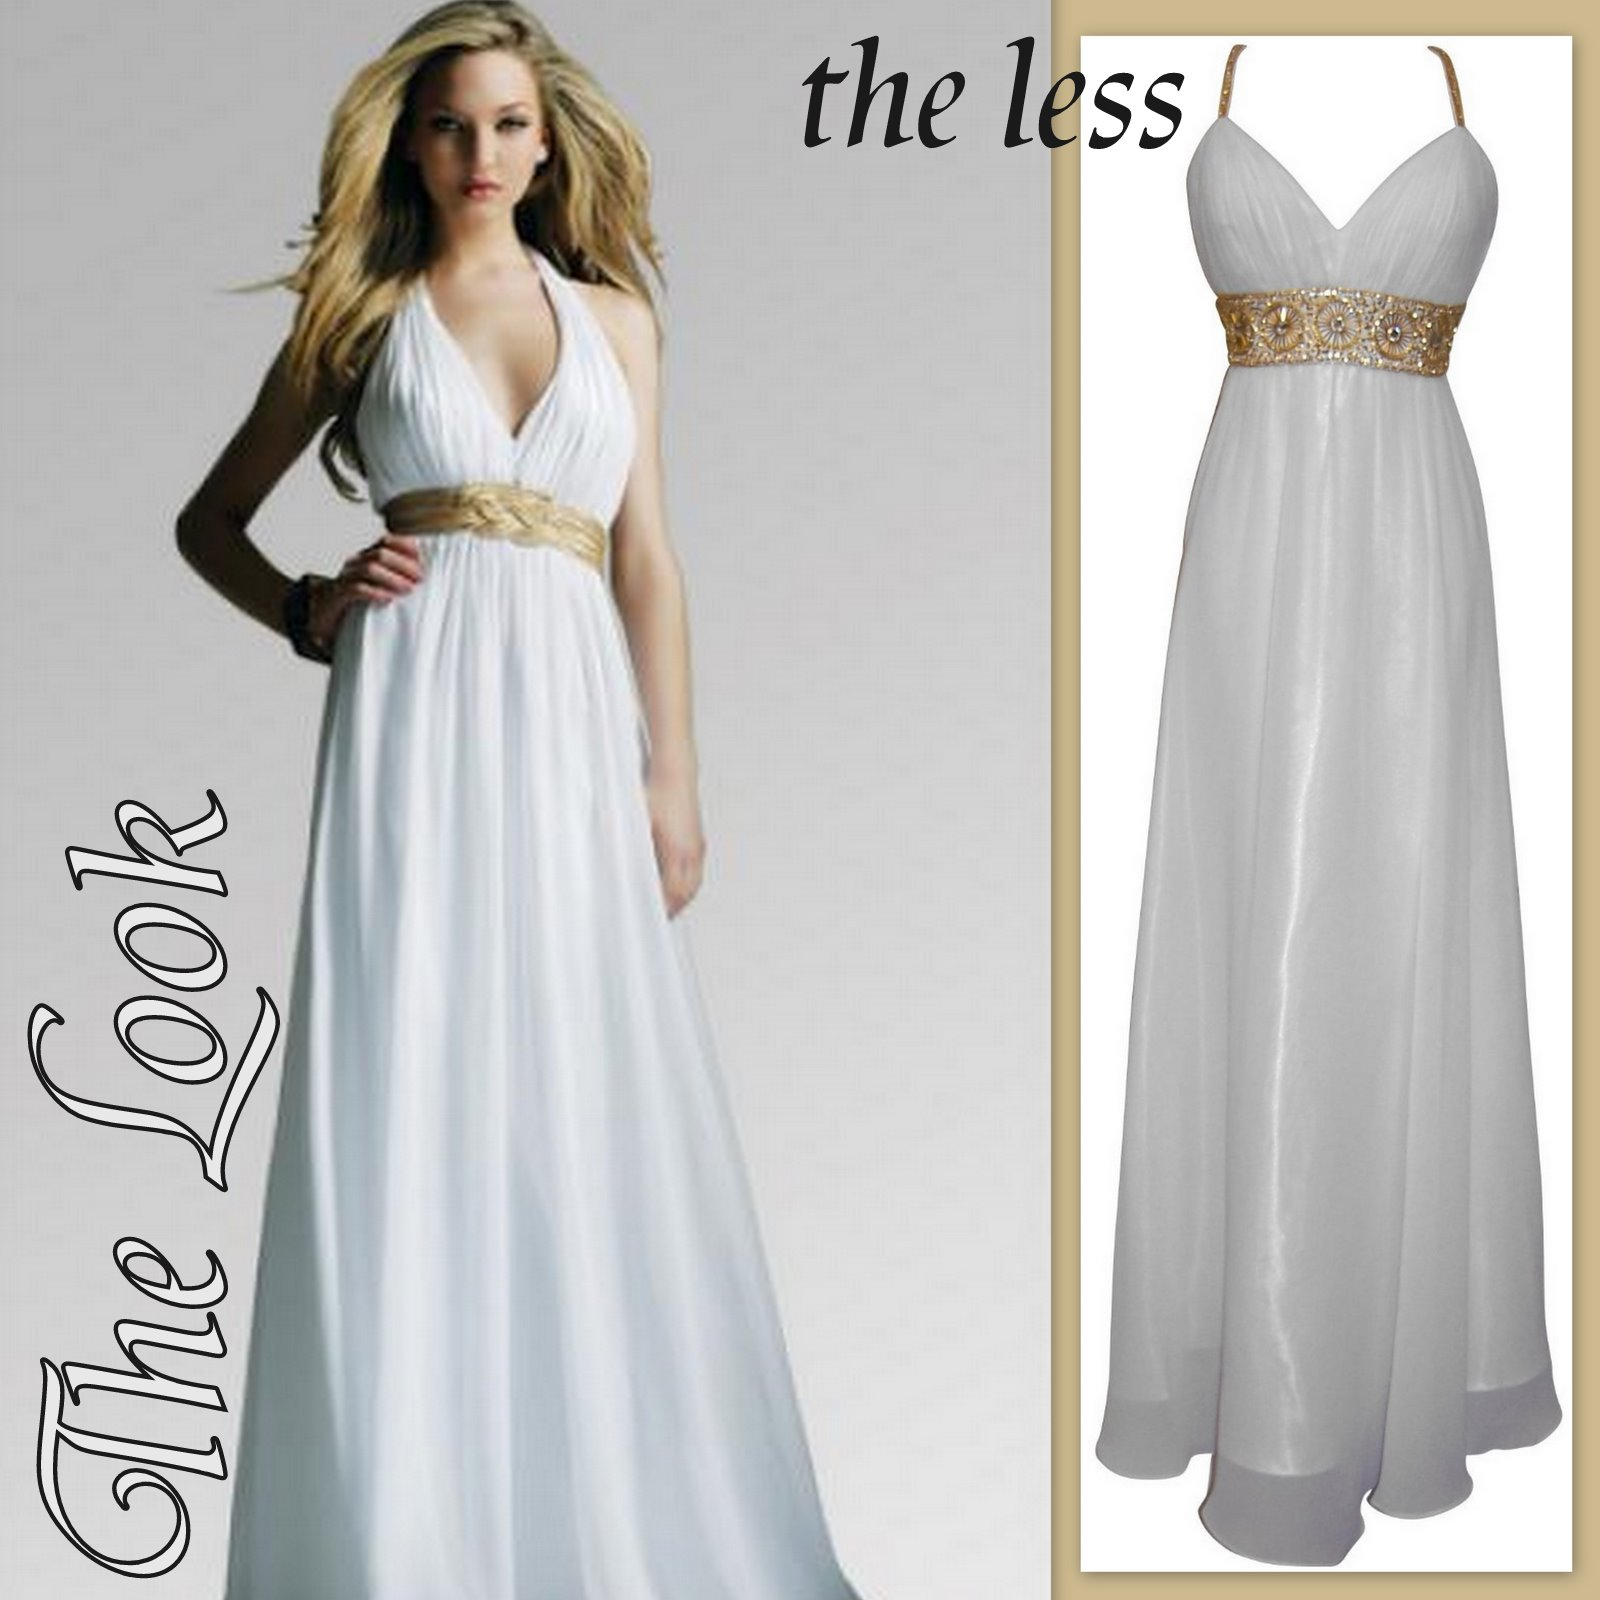 Goddess Dress: Get The Wedding Look For Less: Look For Less: Goddess Like